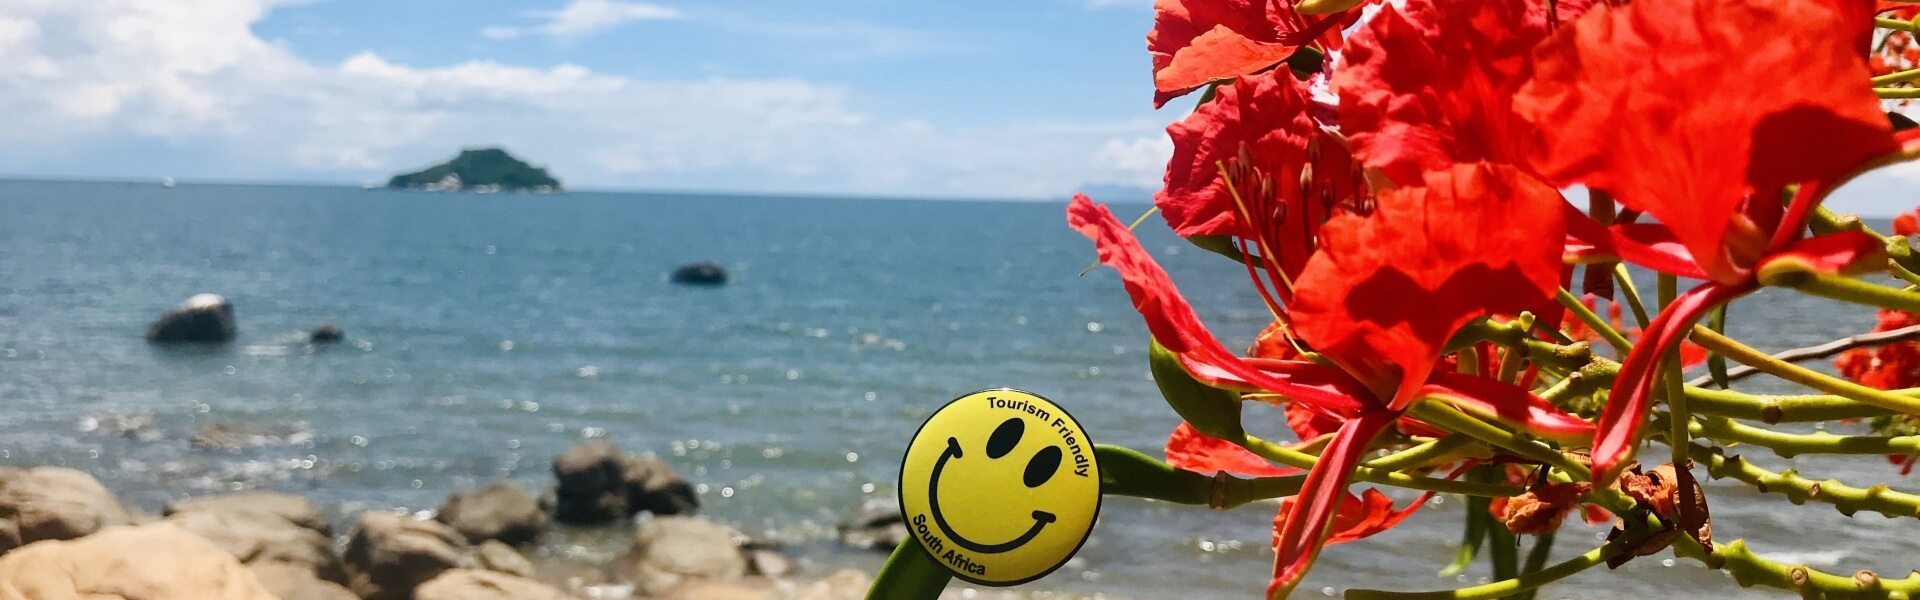 Tourism Friendly logo on flowering plant for Lake Malawi